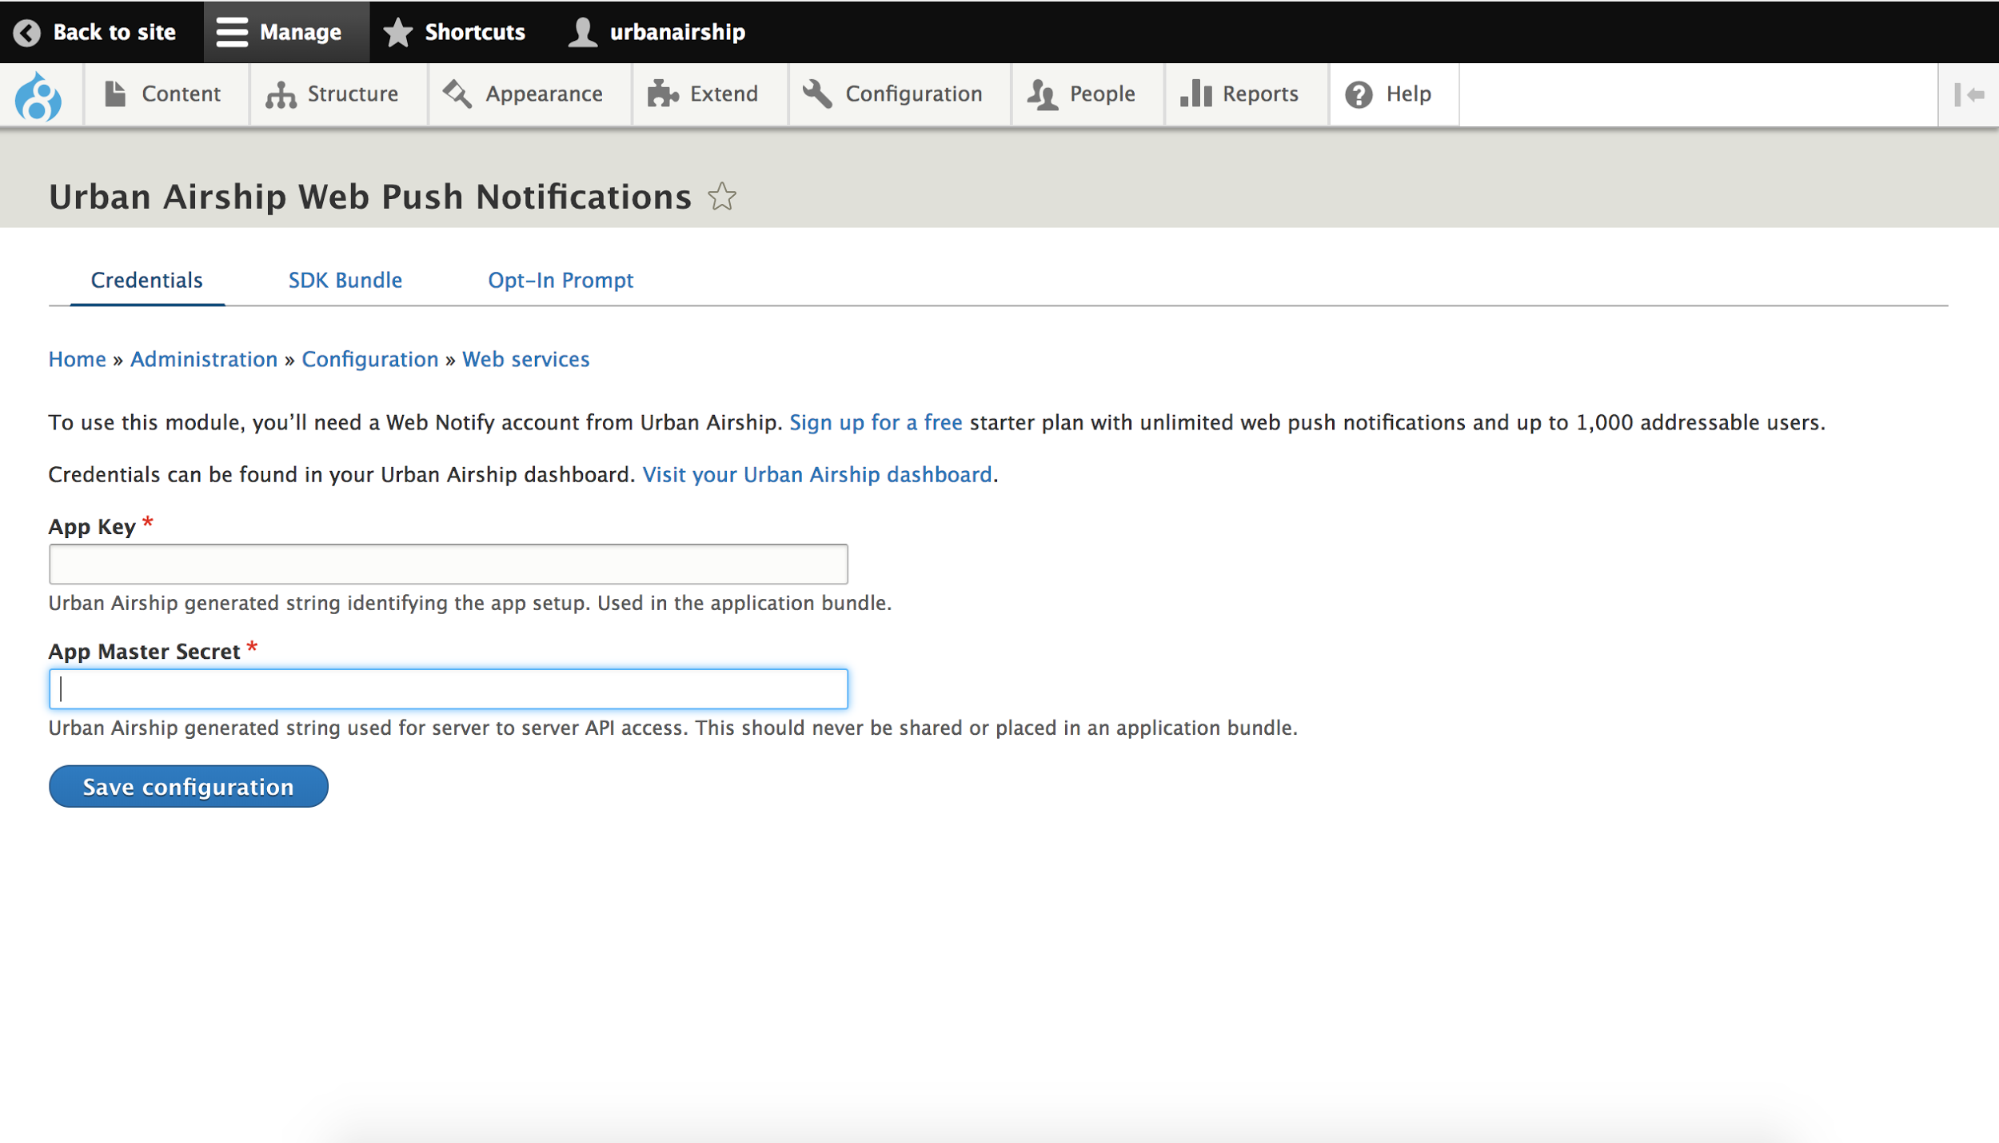 drupal-8-web-push-notification-module-plugin.png